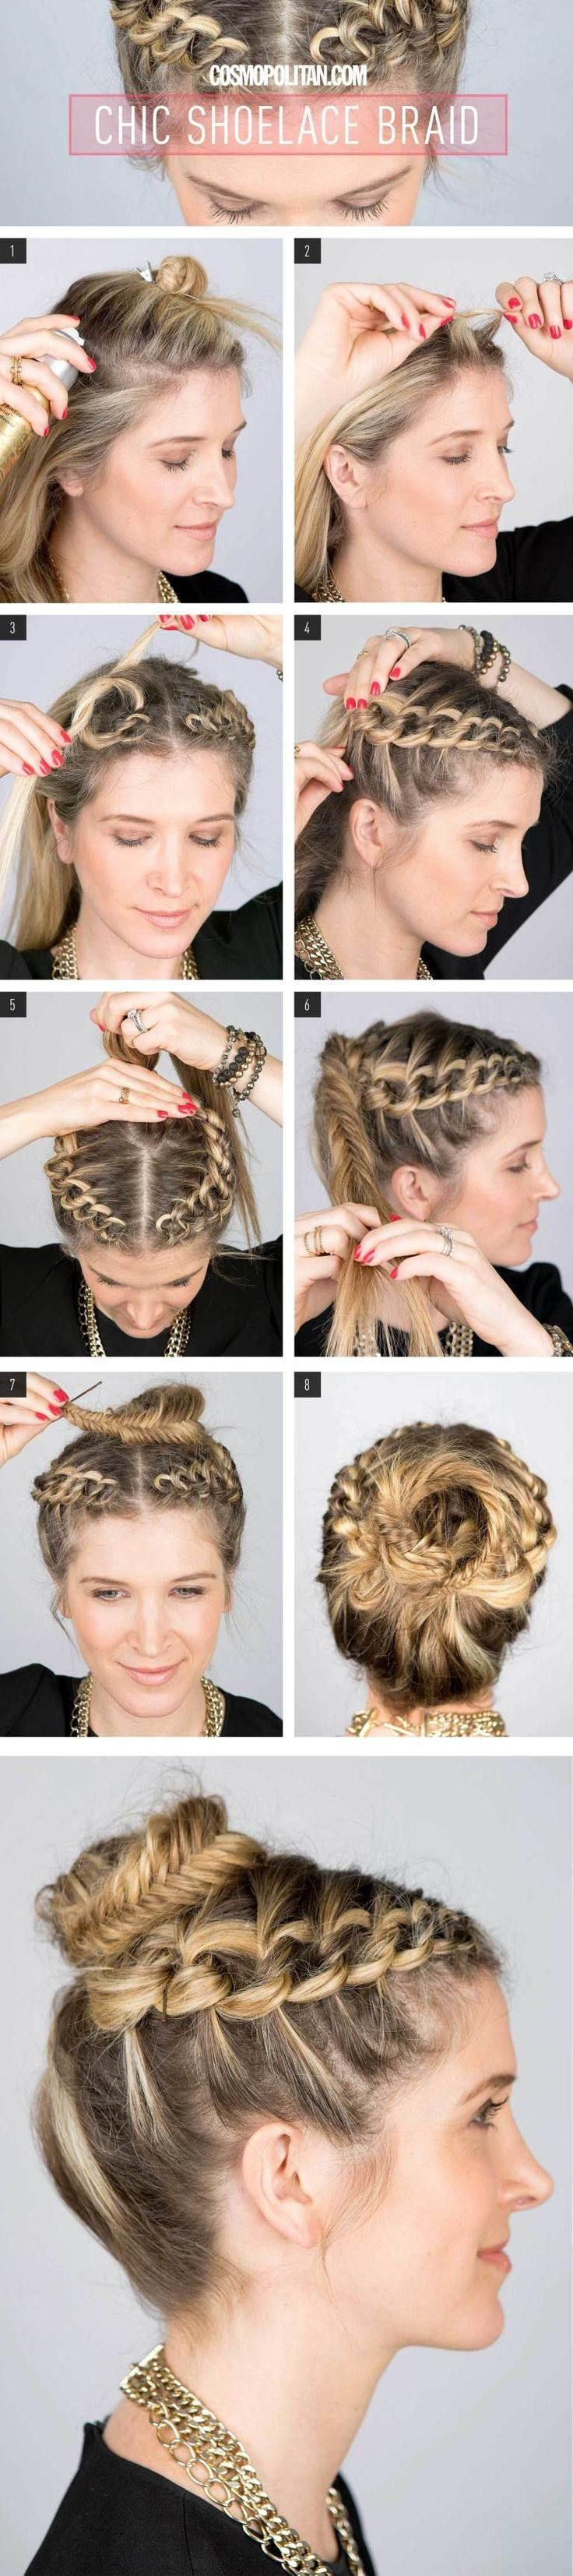 Tremendous 1000 Ideas About Braided Hairstyles Tutorials On Pinterest Hairstyle Inspiration Daily Dogsangcom